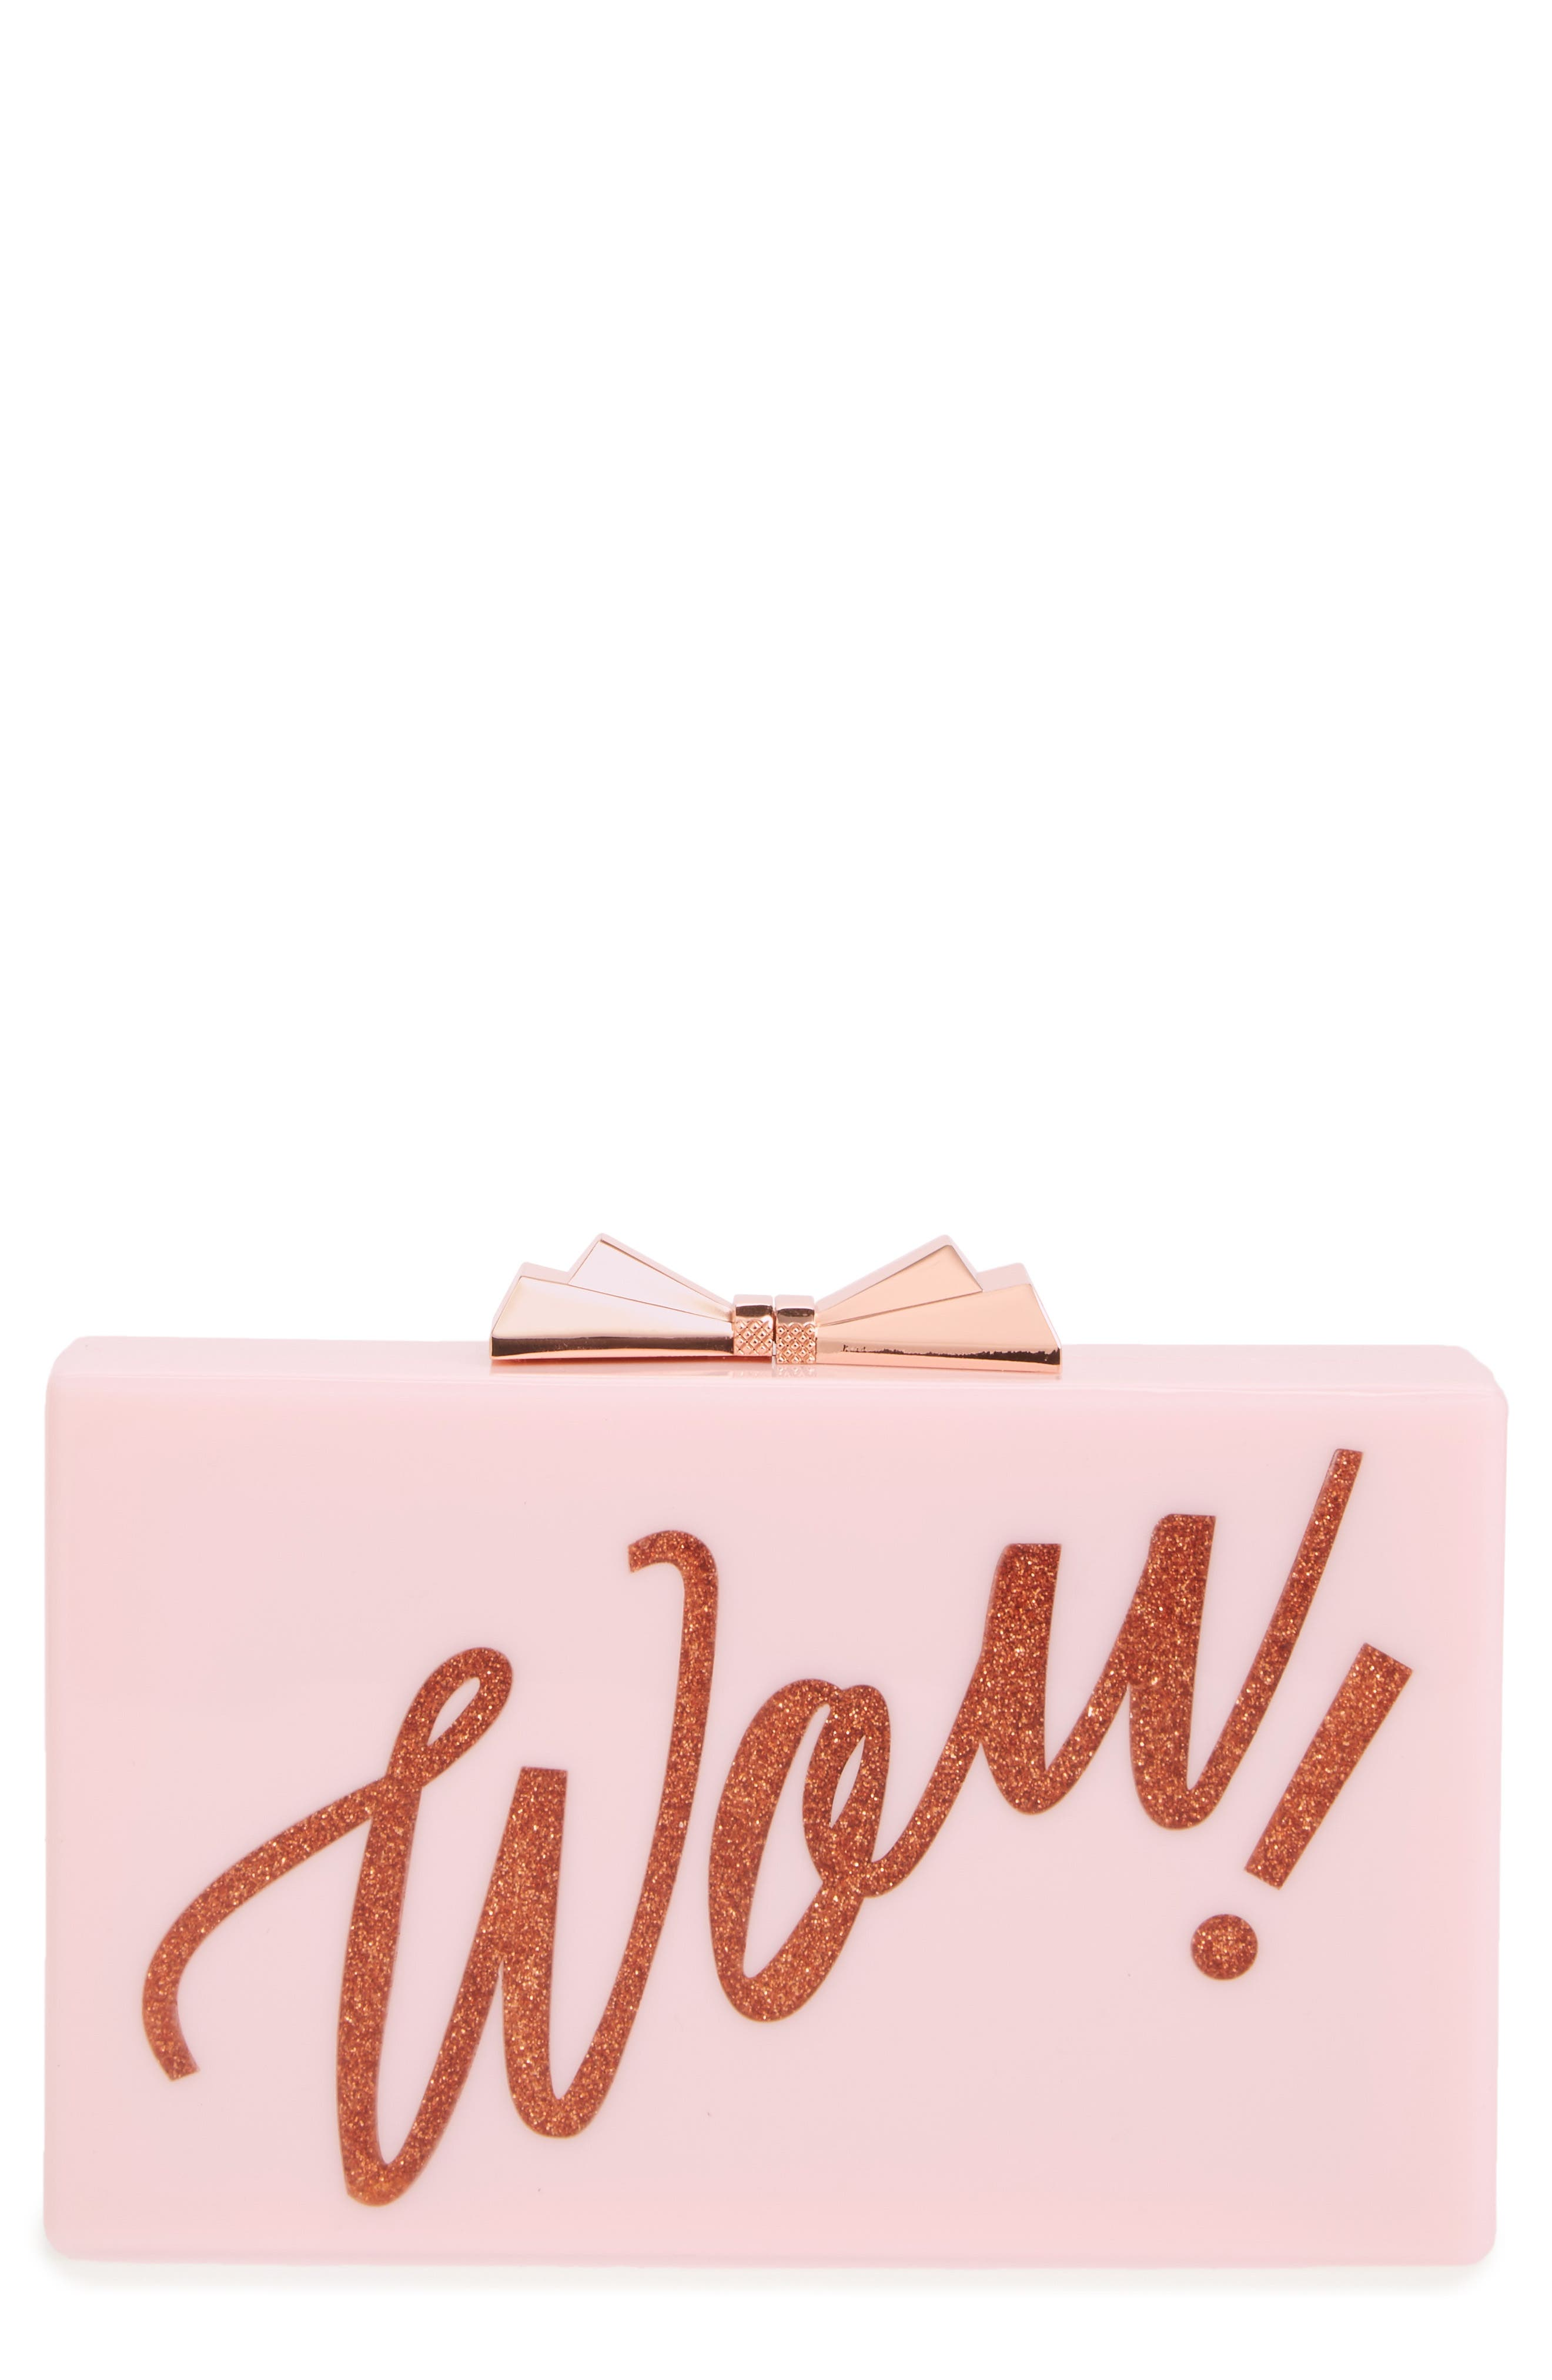 Stecy Wow Clutch, Main, color, 530